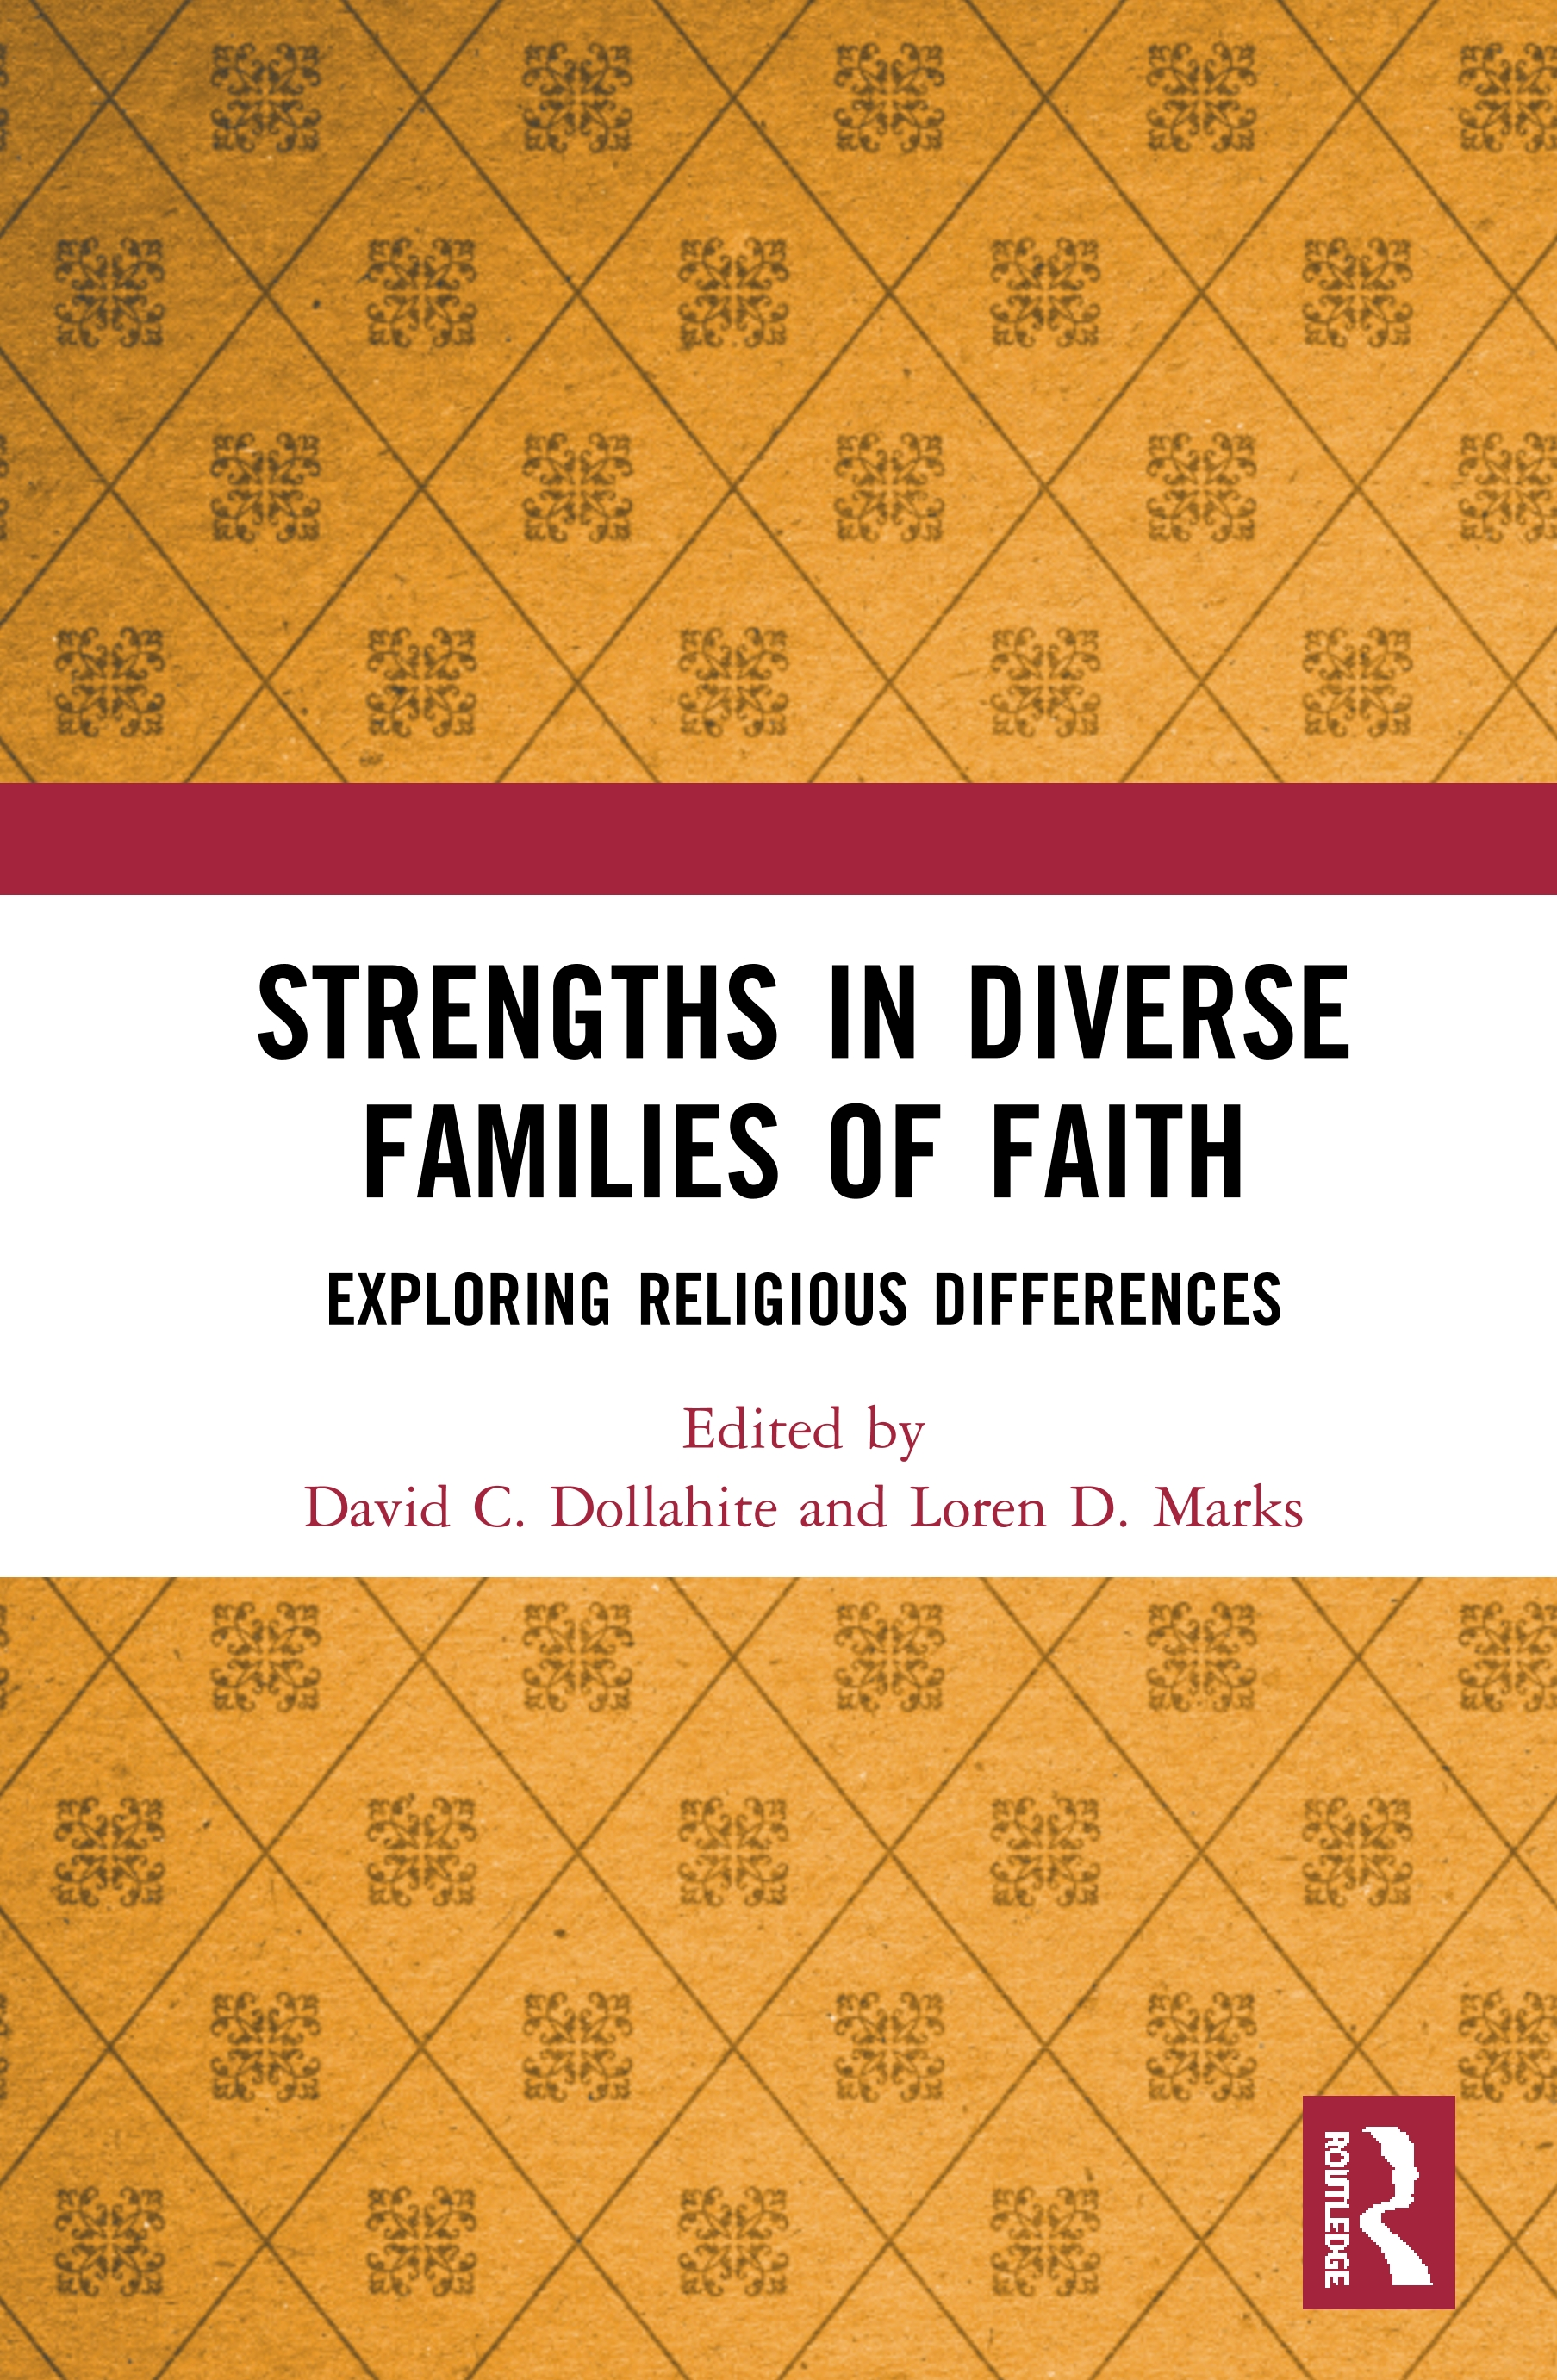 Strengths in Diverse Families of Faith: Exploring Religious Differences book cover